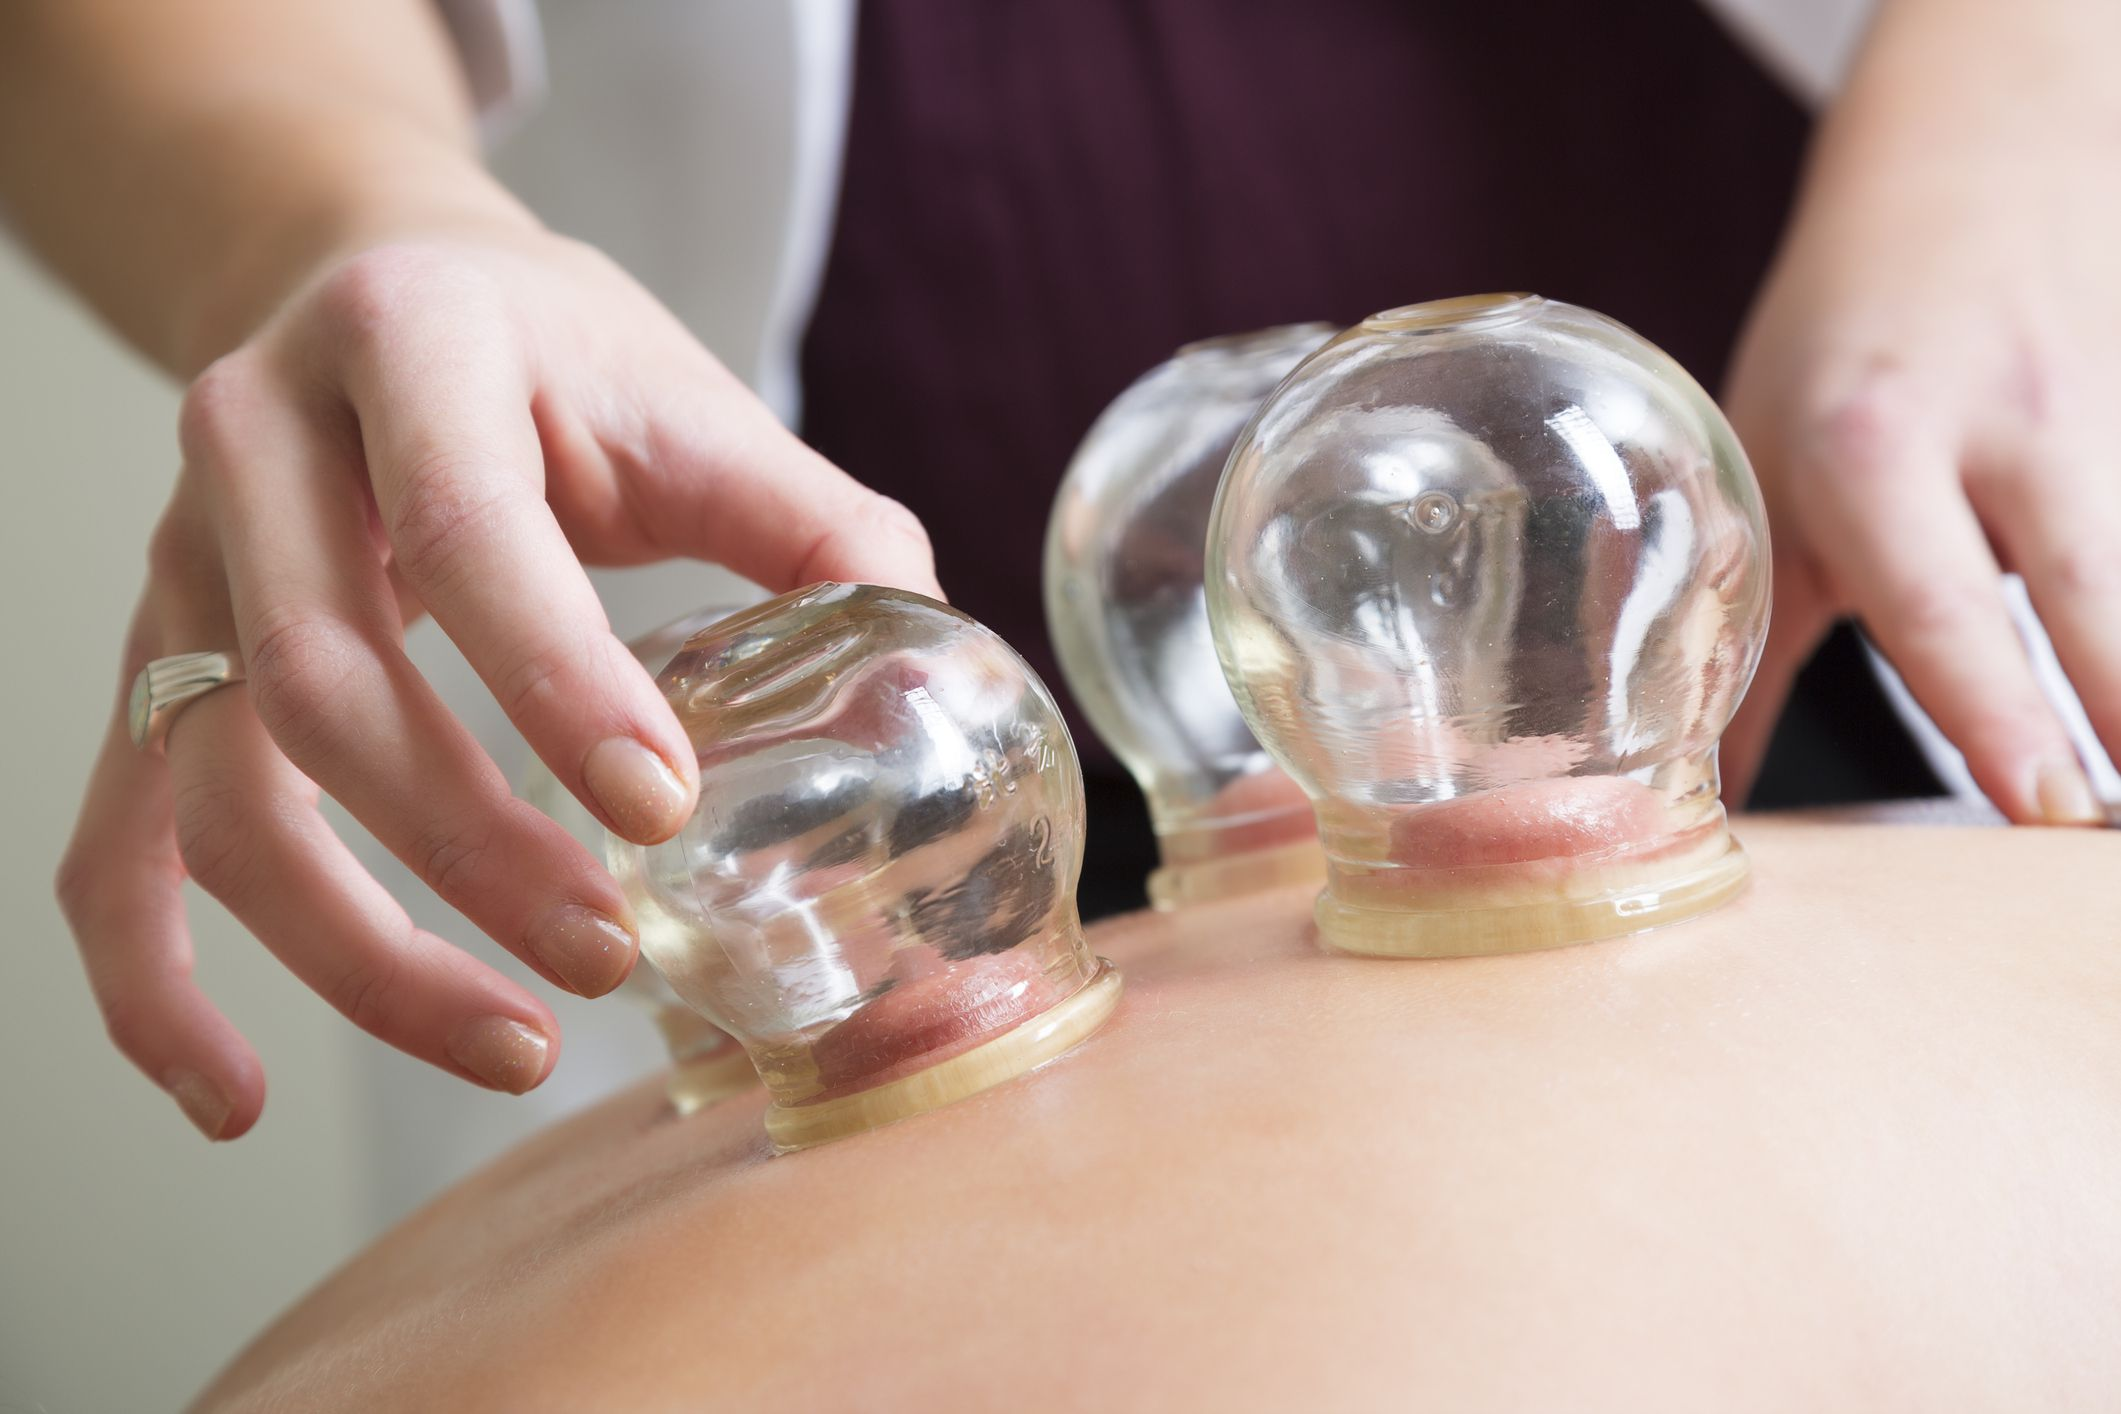 Does Cupping Bring Relief for Fibromyalgia?